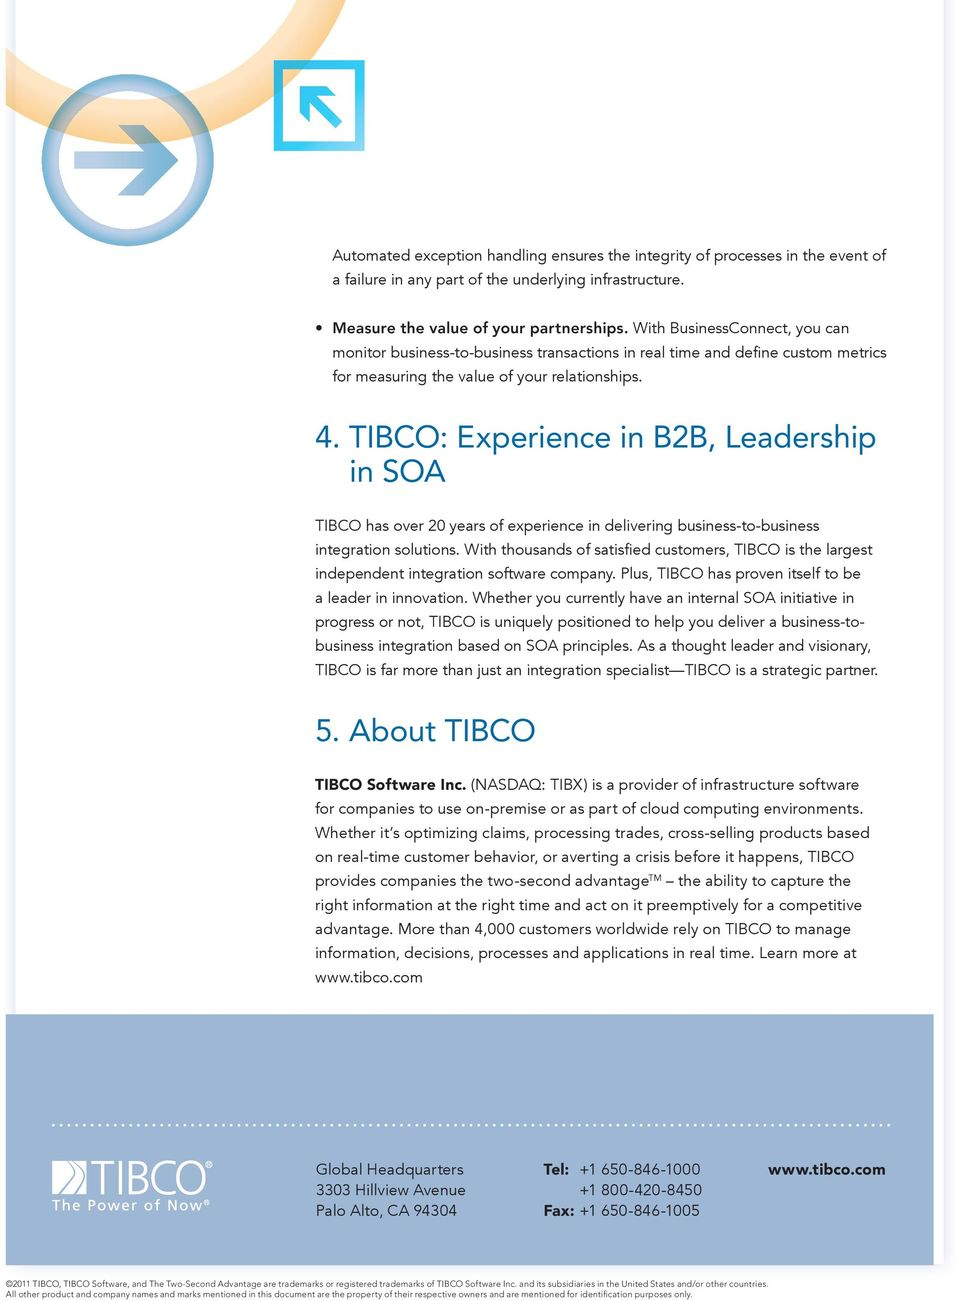 TIBCO: Experience in B2B, Leadership in SOA TIBCO has over 20 years of experience in delivering business-to-business integration solutions.